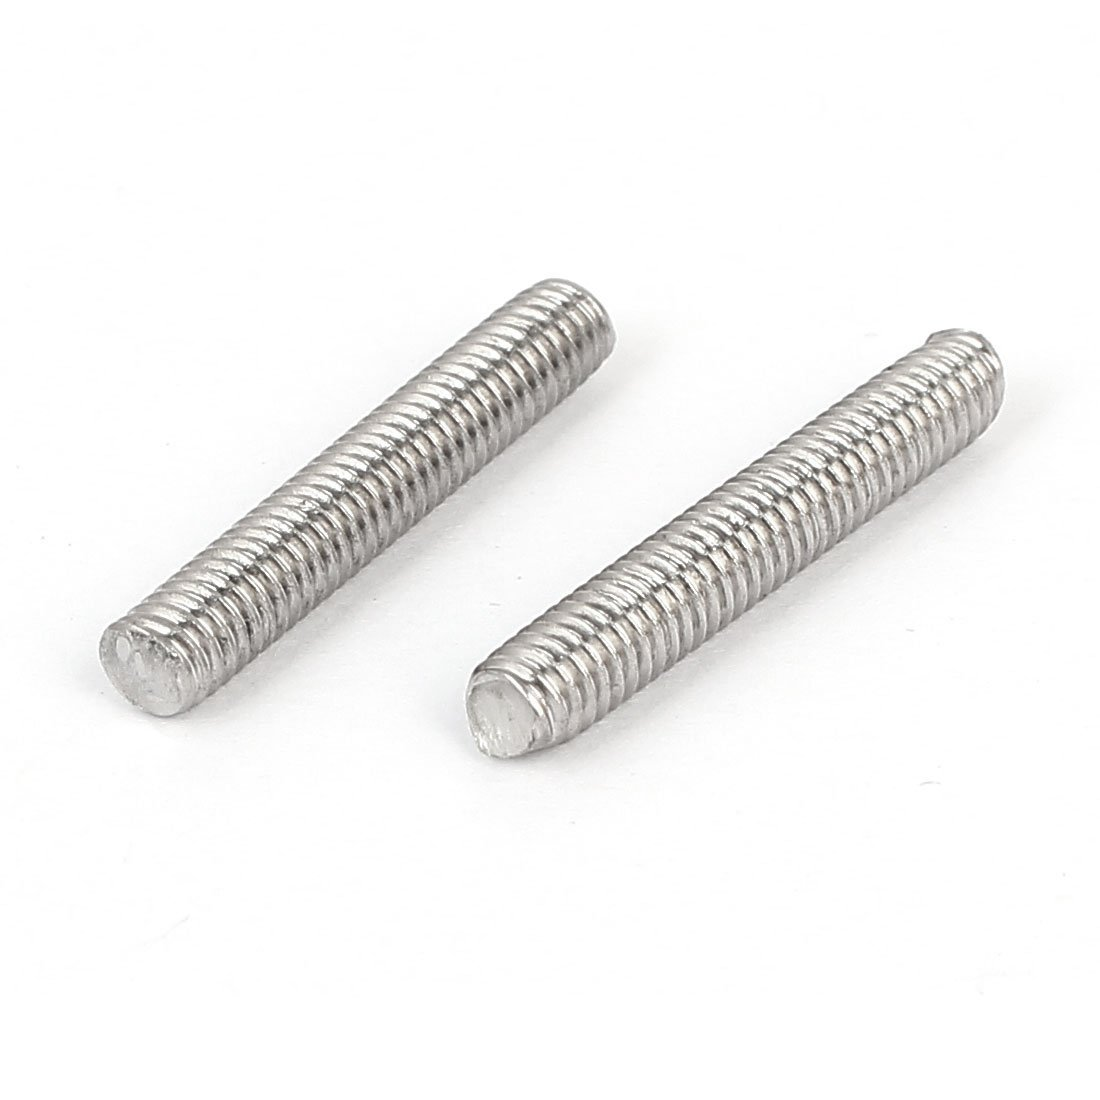 M4 x 25 mm Stainless Steel 304 Fully Threaded Rod Rod Stud Fastener 20 Pieces